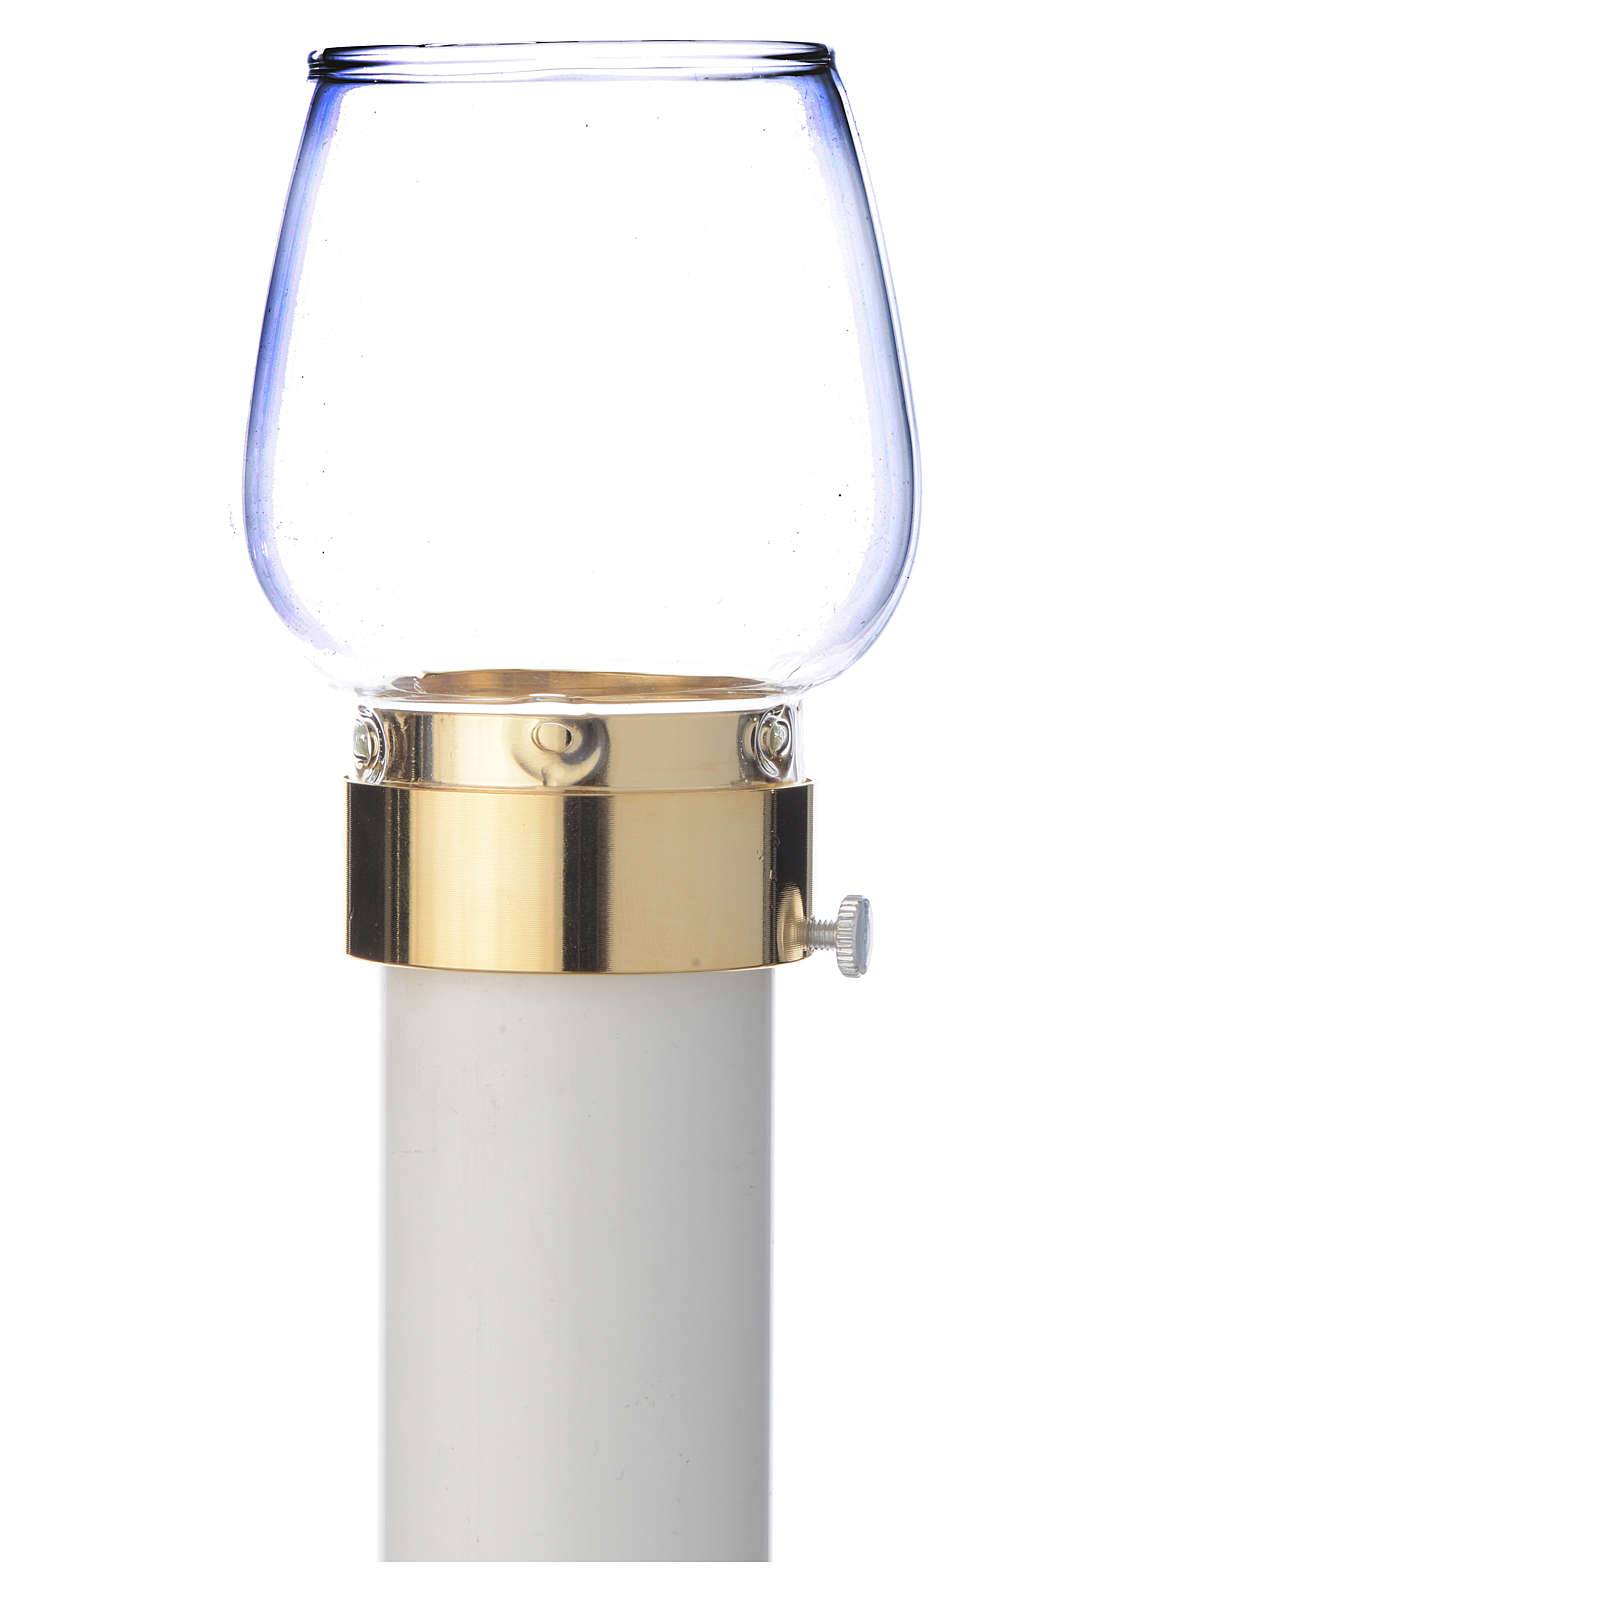 Wind-proof lamp, 30cm tall with golden base, 5cm diameter 3